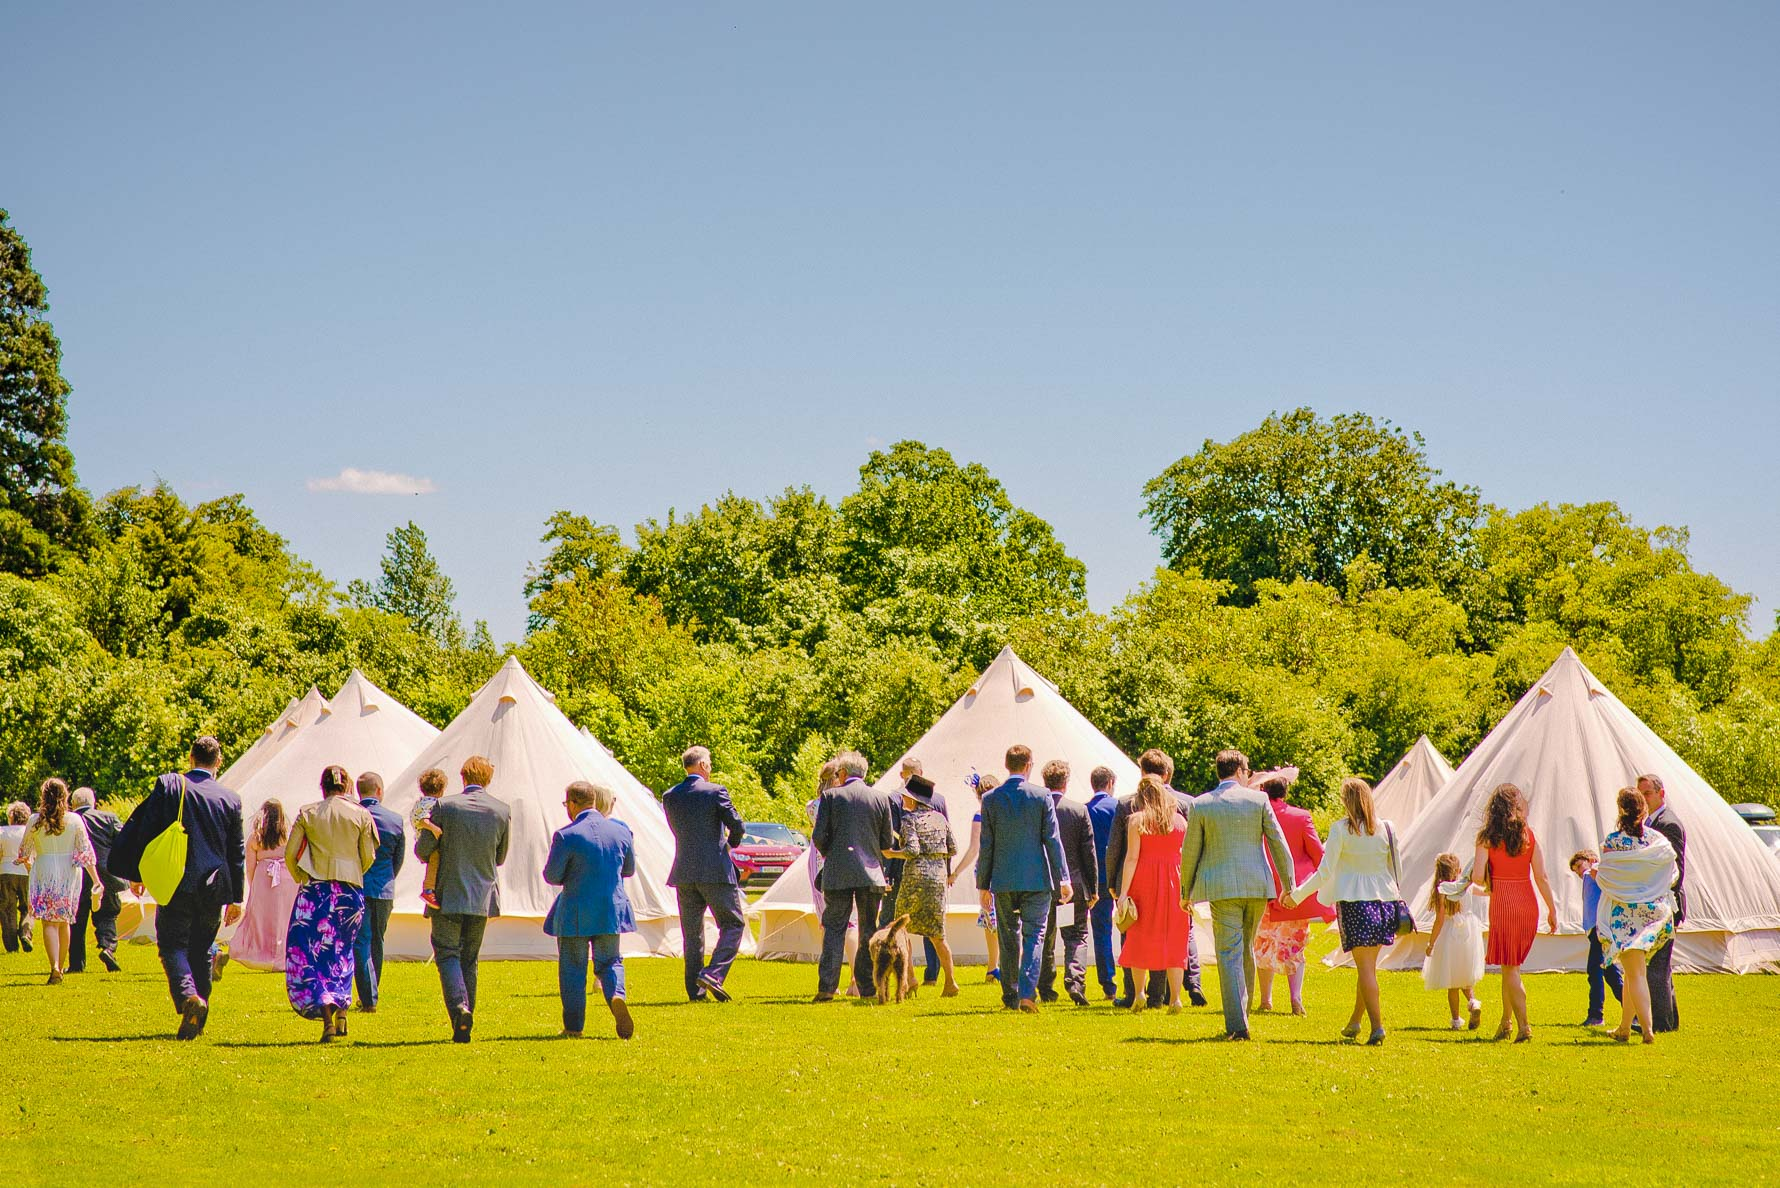 Wedding guests at Burleigh Hill Farm in Cambridgeshire